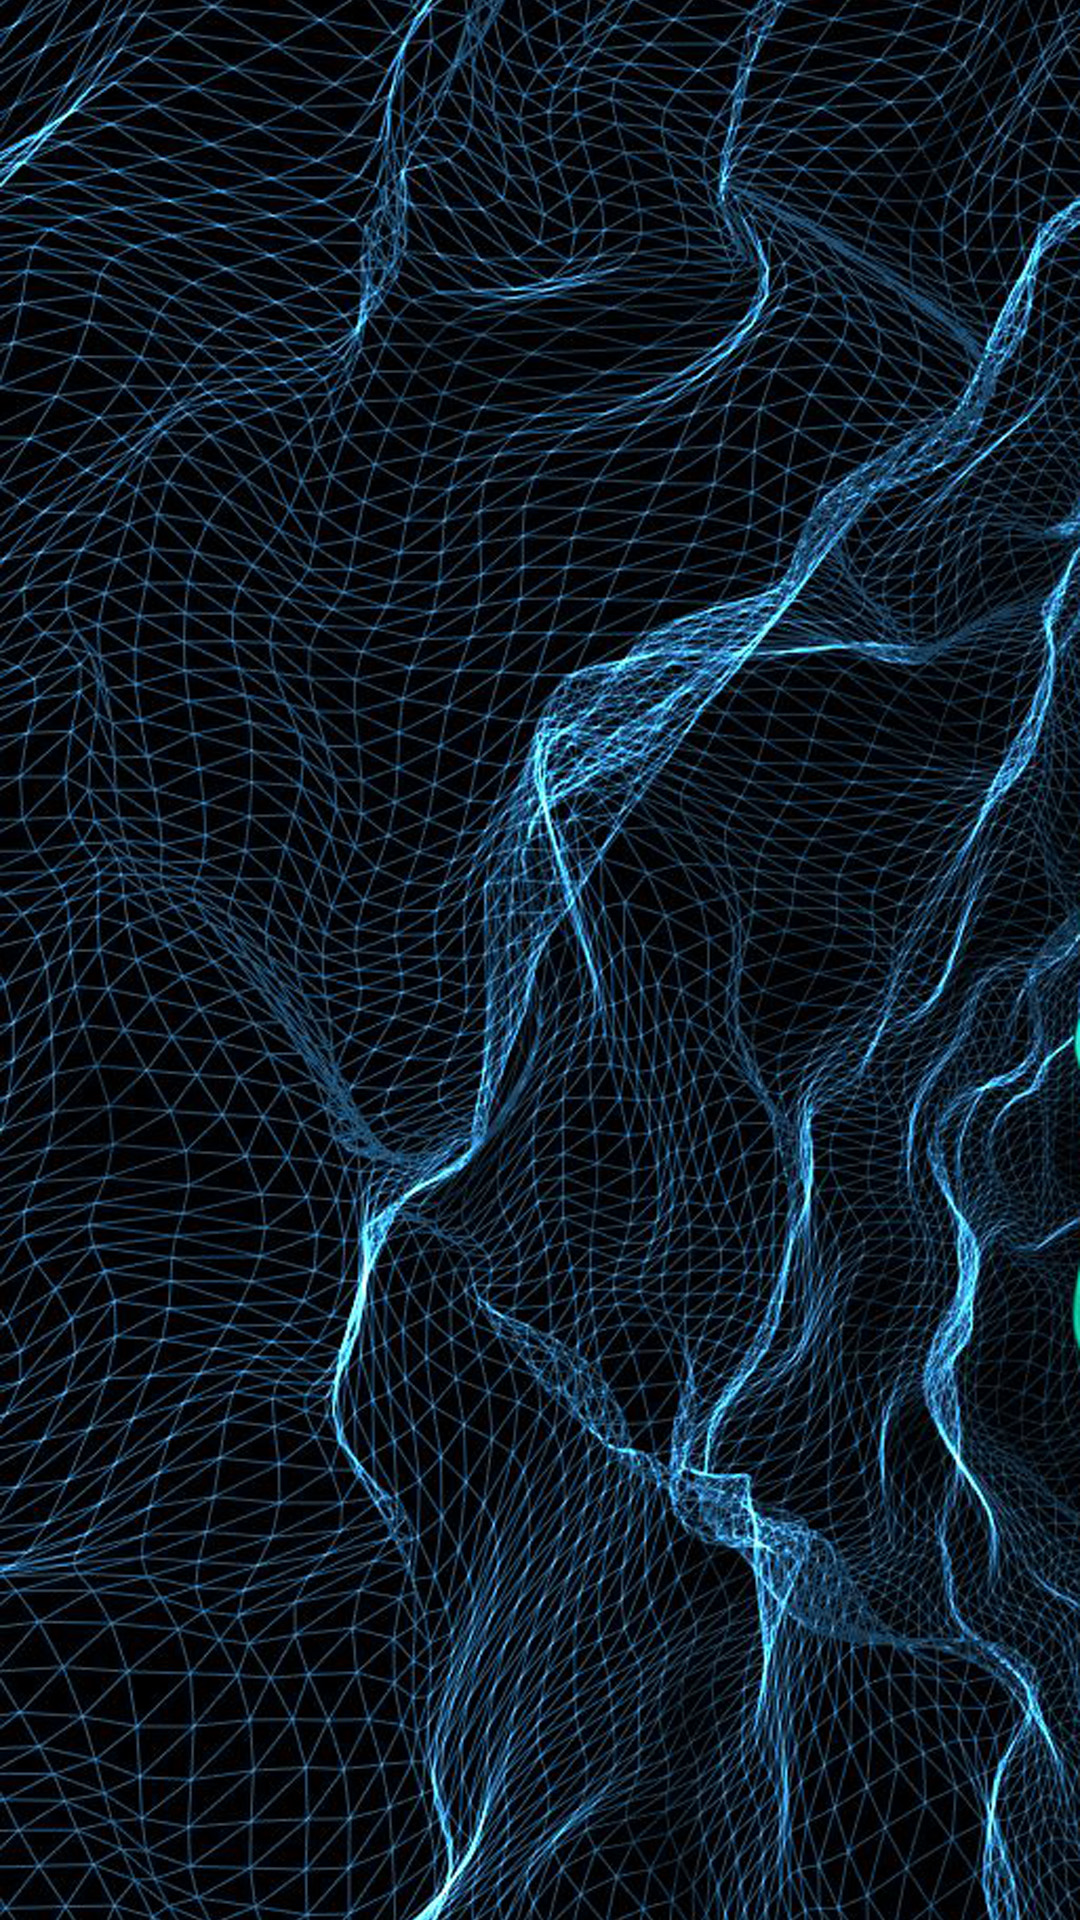 3D Network for iphone 6 plus wallpapers, iPhone 6 Plus Wallpaper